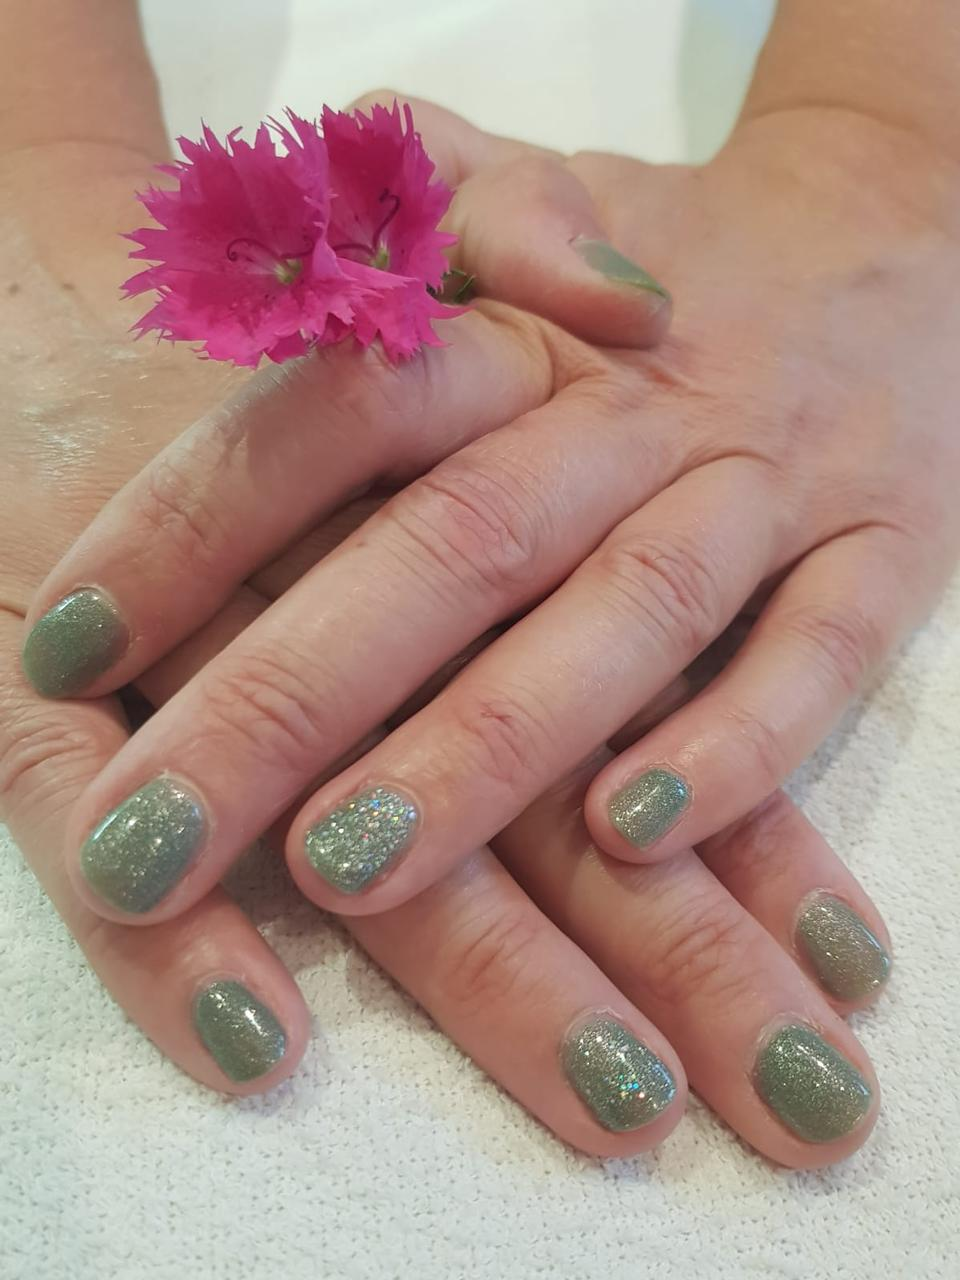 Base Coat, Kleur Wild Moss, ringvinger Titanium, Top Coat.